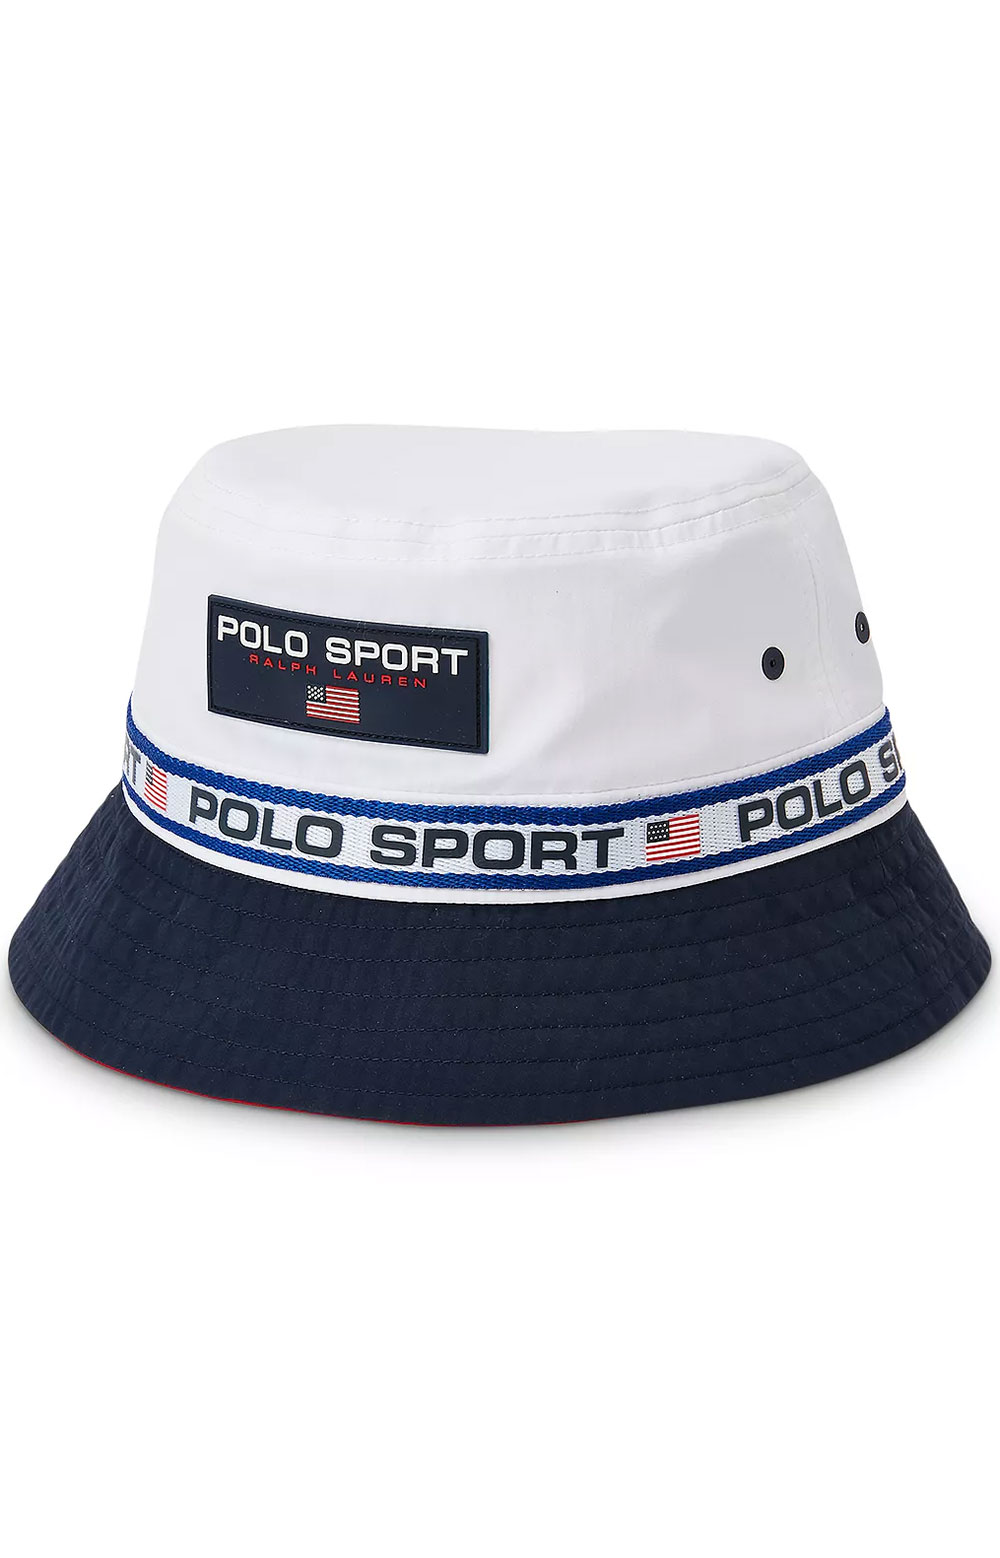 Polo Sport Nylon Bucket Hat - Pure White/Newport Navy